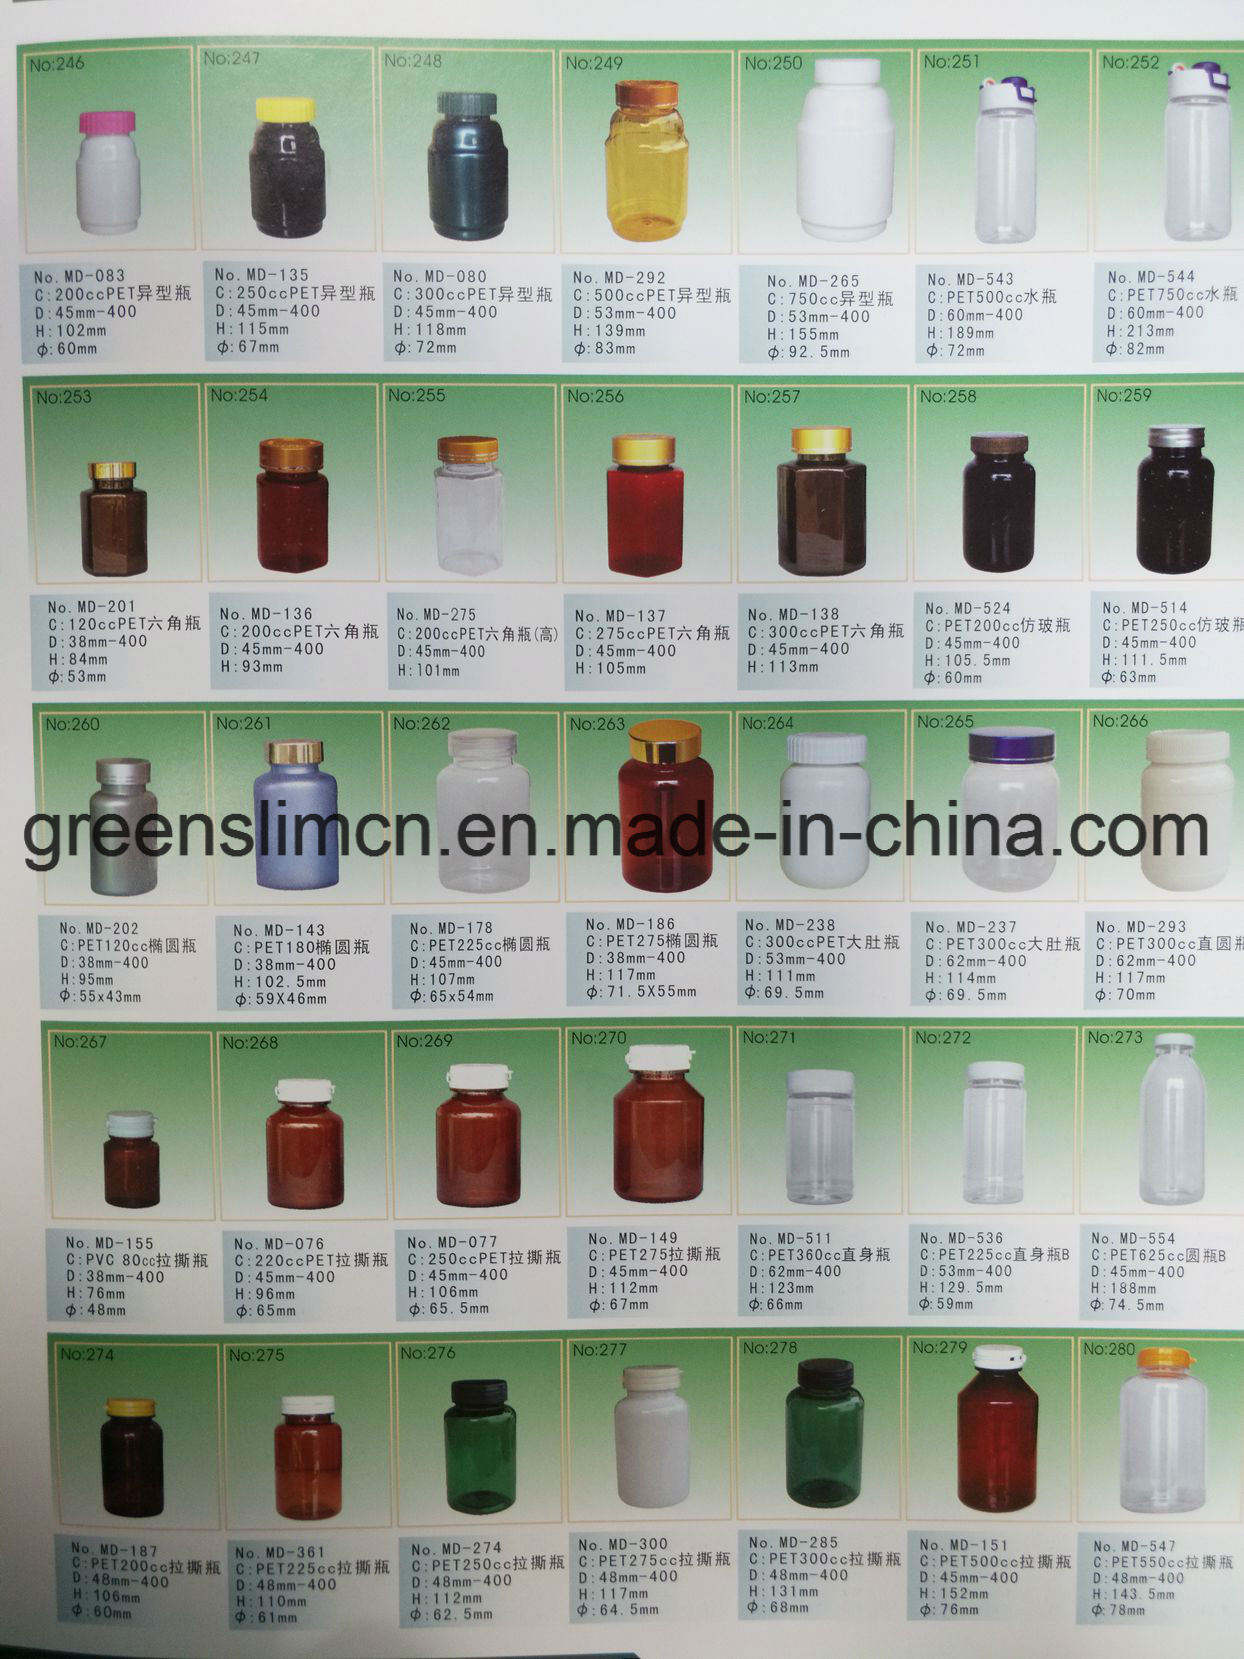 OEM Dietary Supplement Capsules and Bottles with Private Label, Logo and Brand